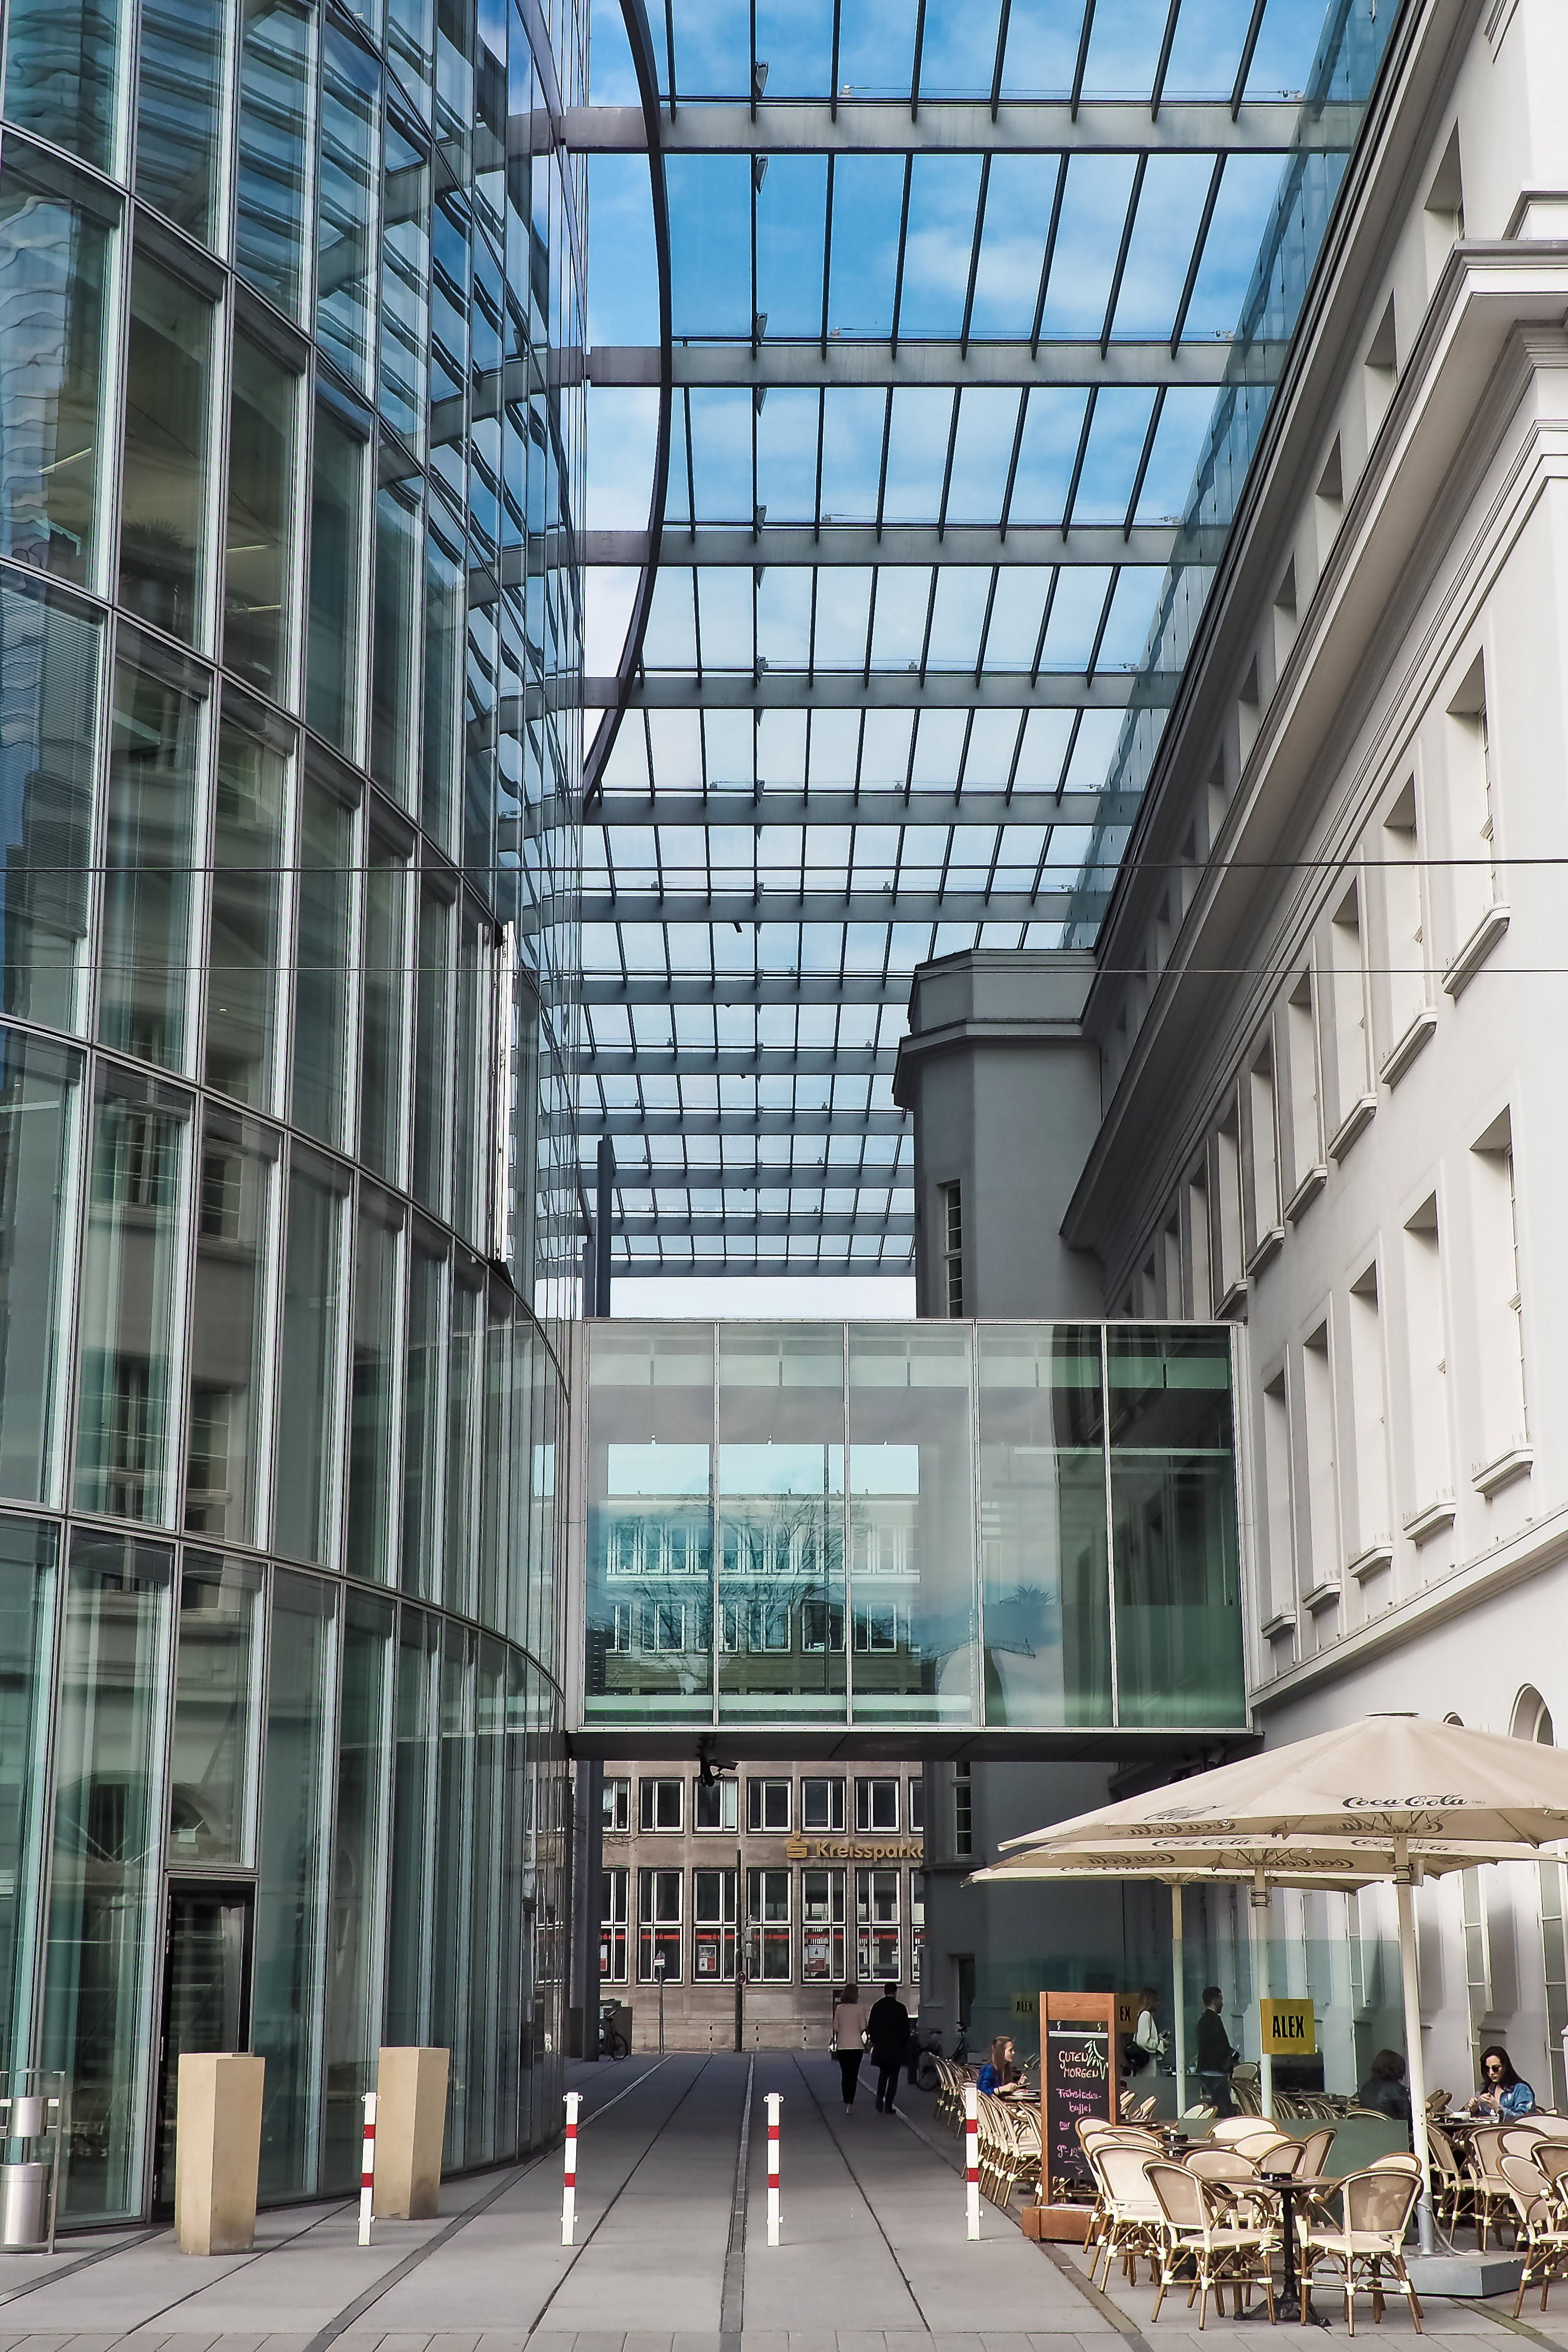 Free stock photo of building, office, glass, café